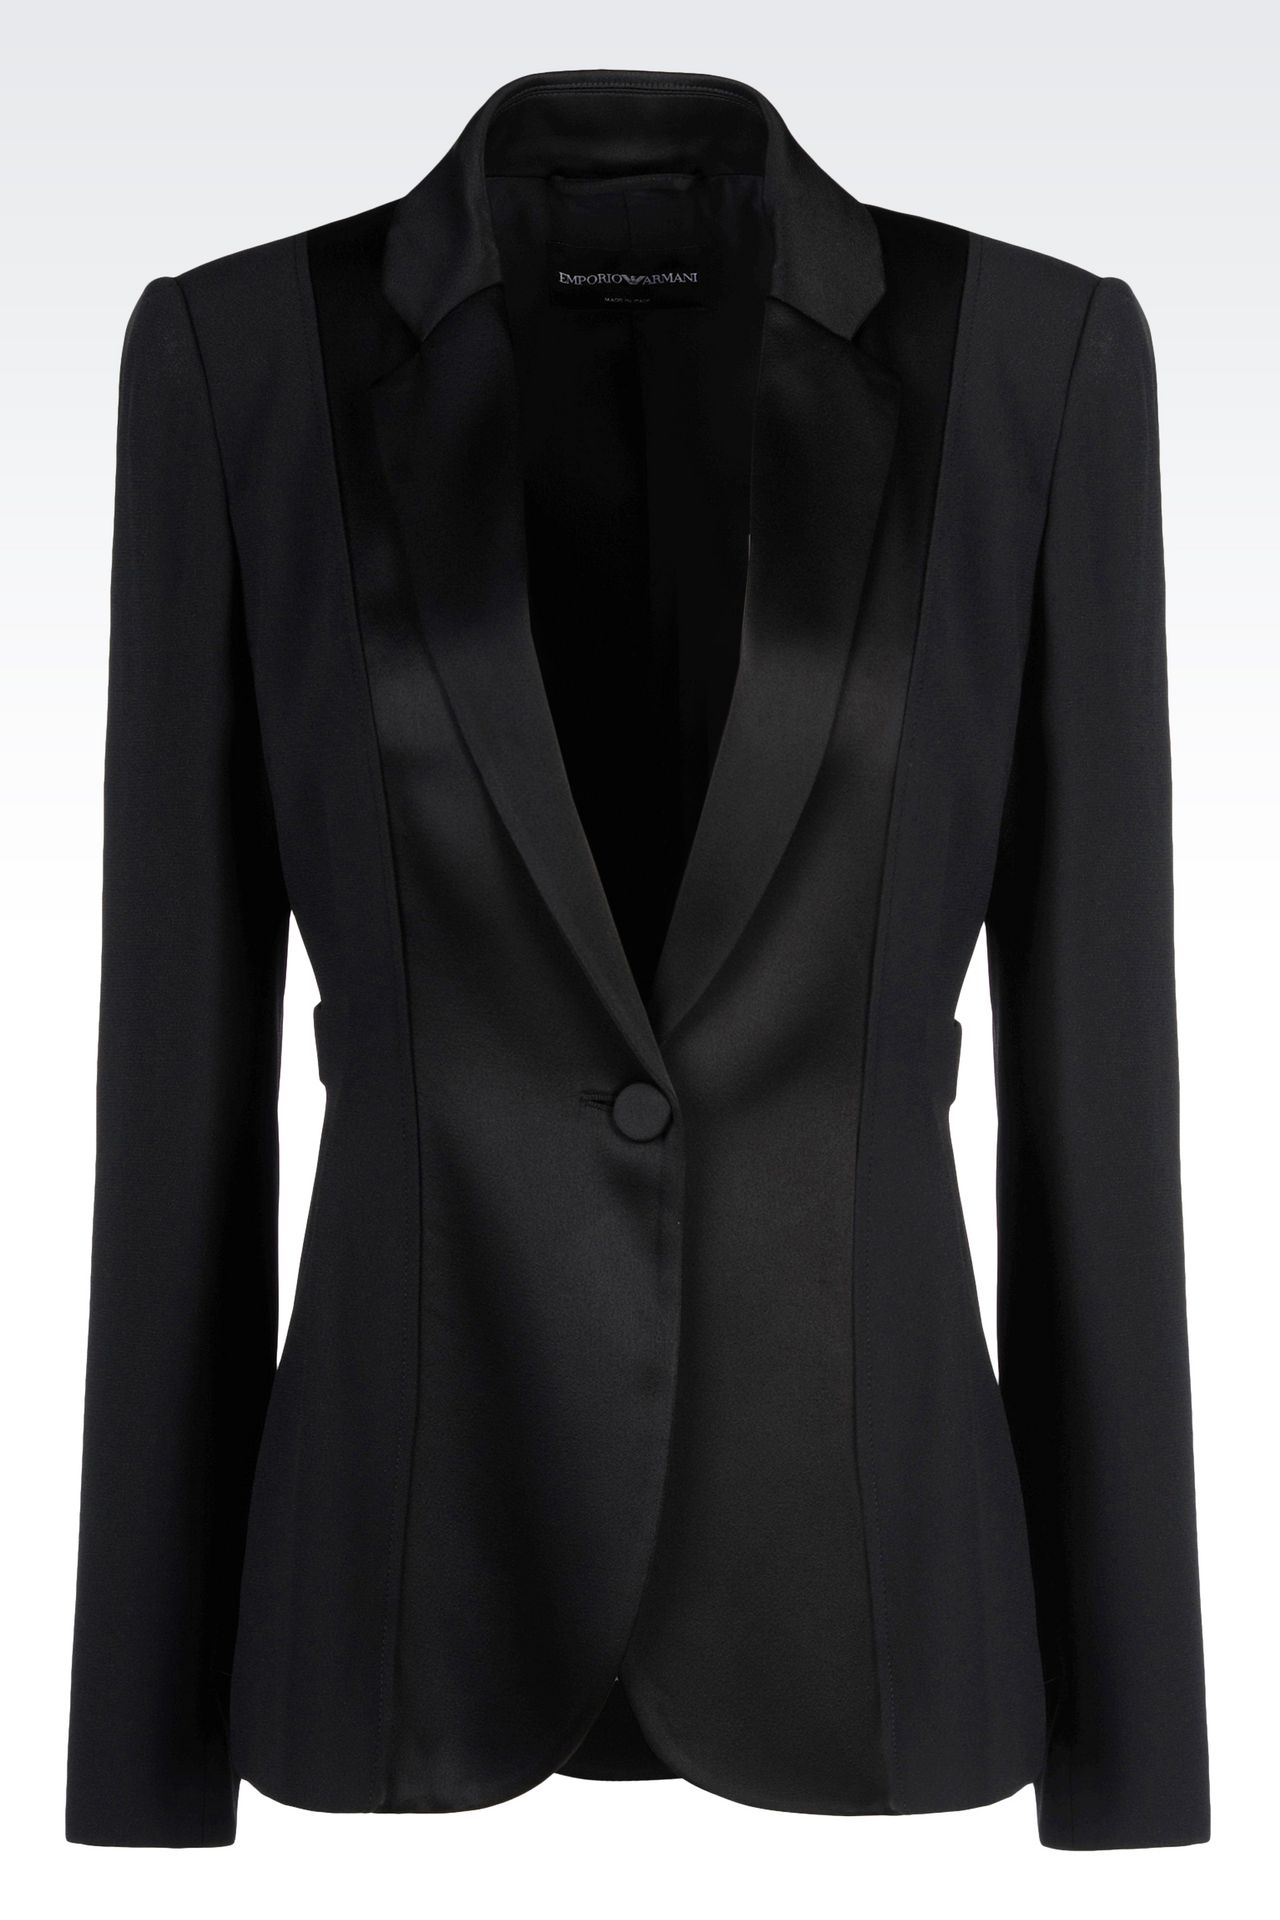 Trust Generation Tux for your affordable tuxedo rentals. Get the latest trends, high.